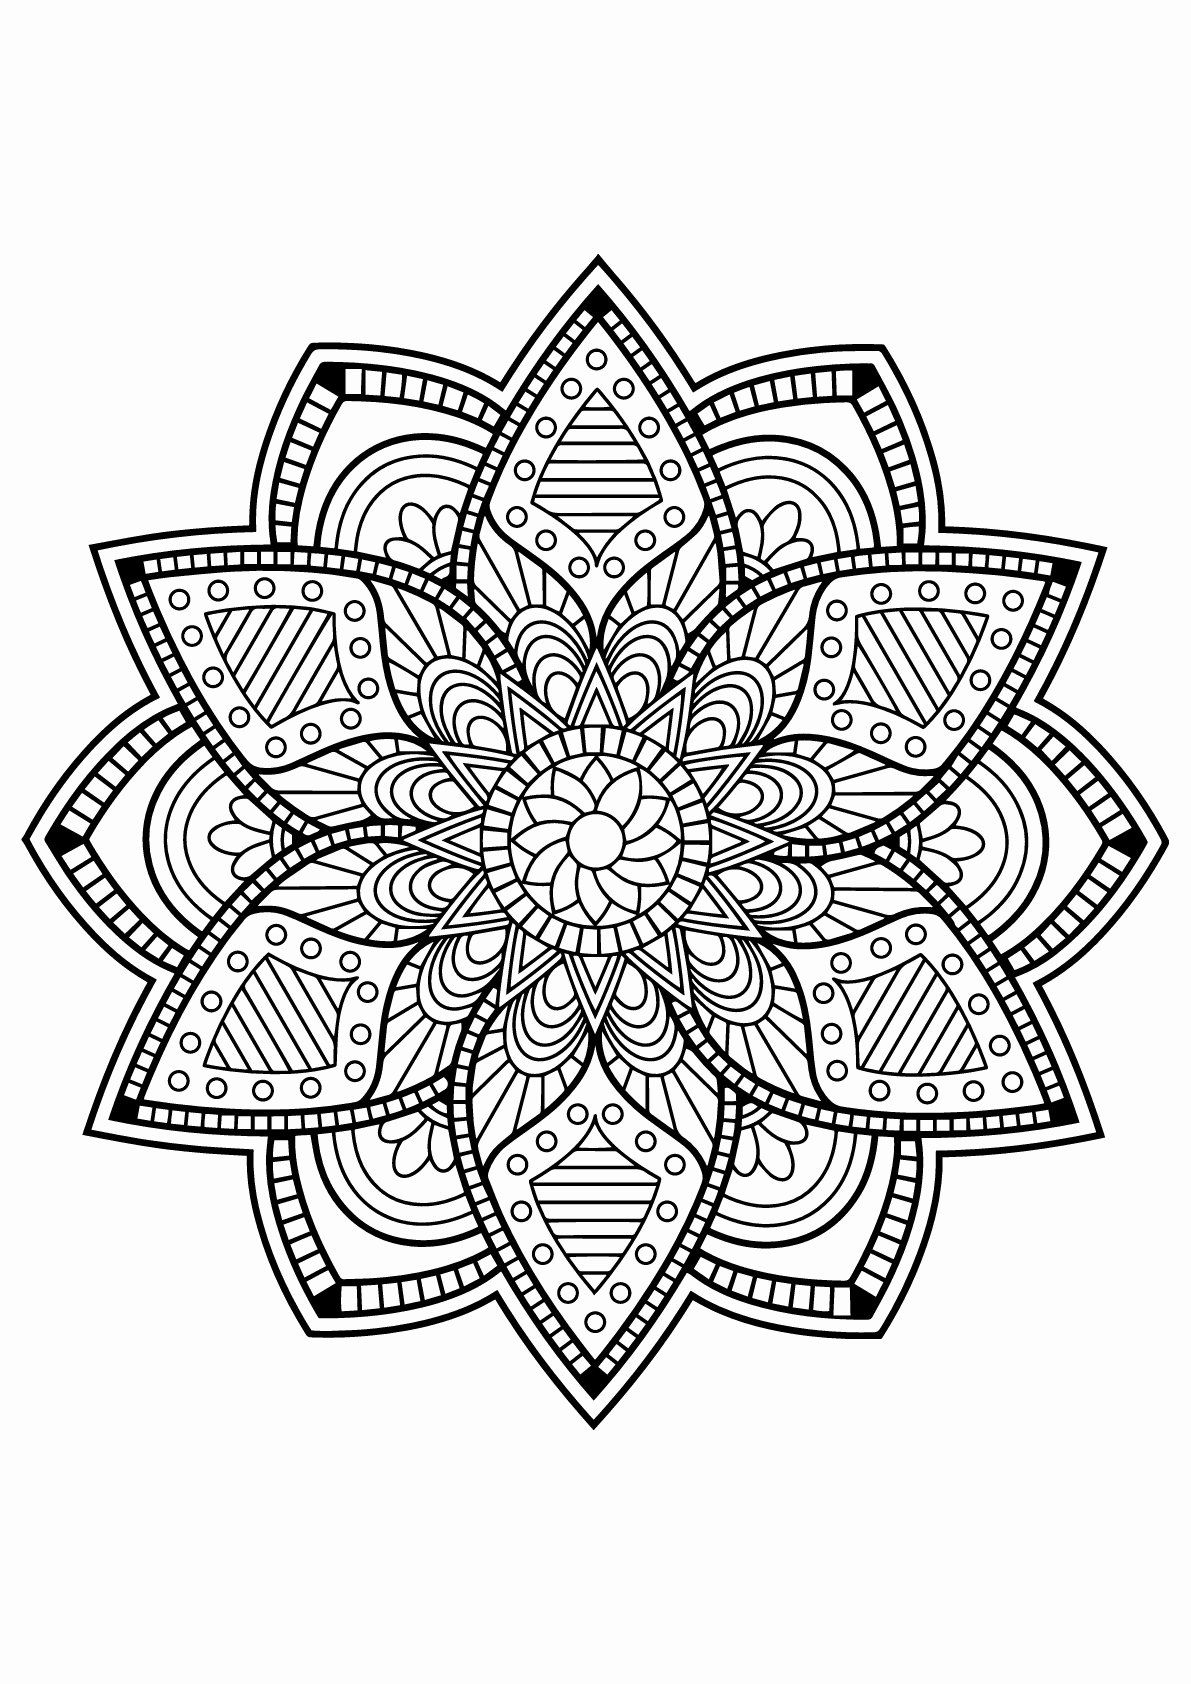 Mandala Adult Coloring Books Best Of Mandalas to Color for ...